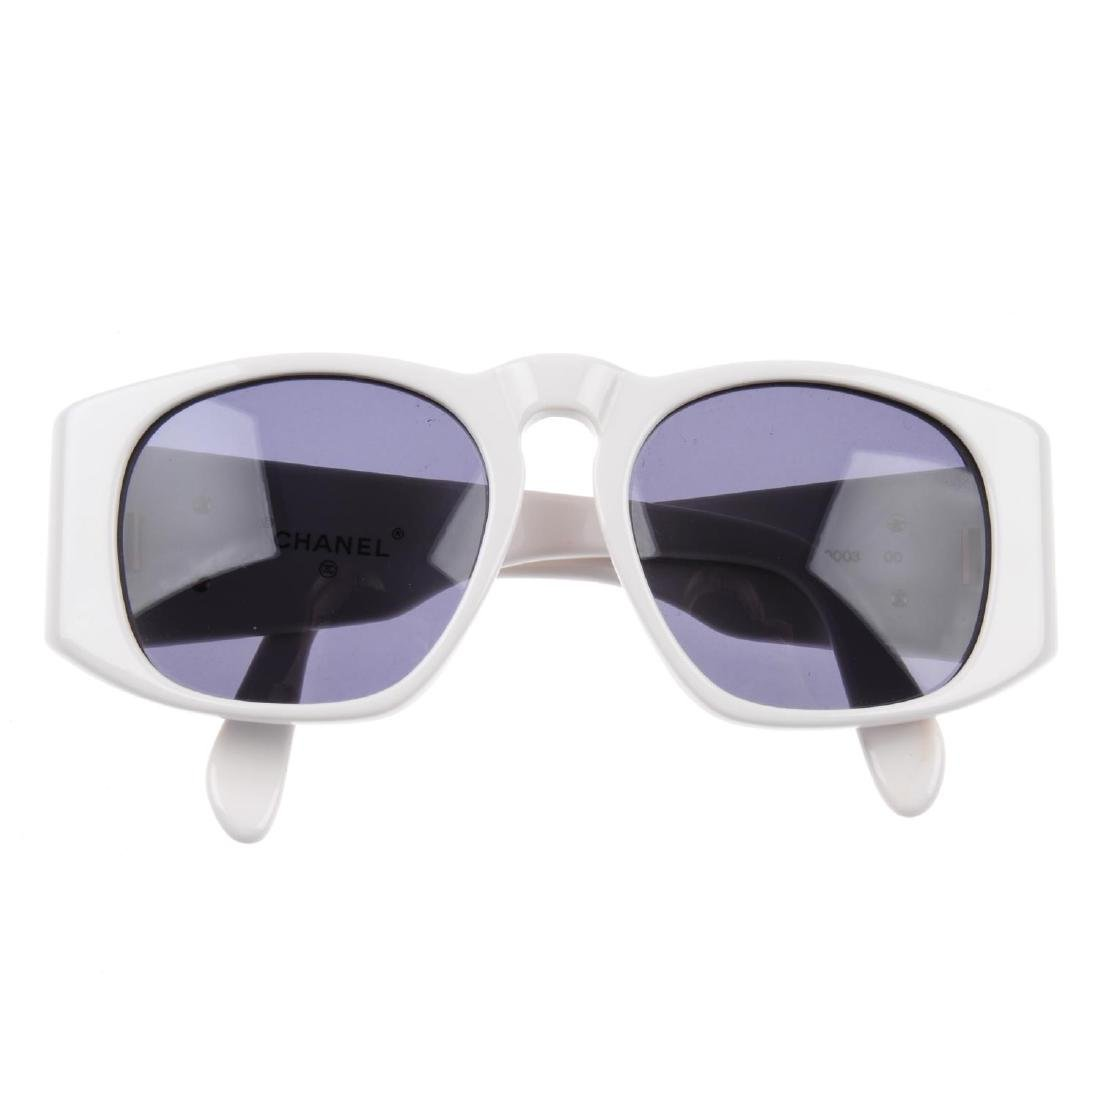 CHANEL - a pair of sunglasses. Designed with white